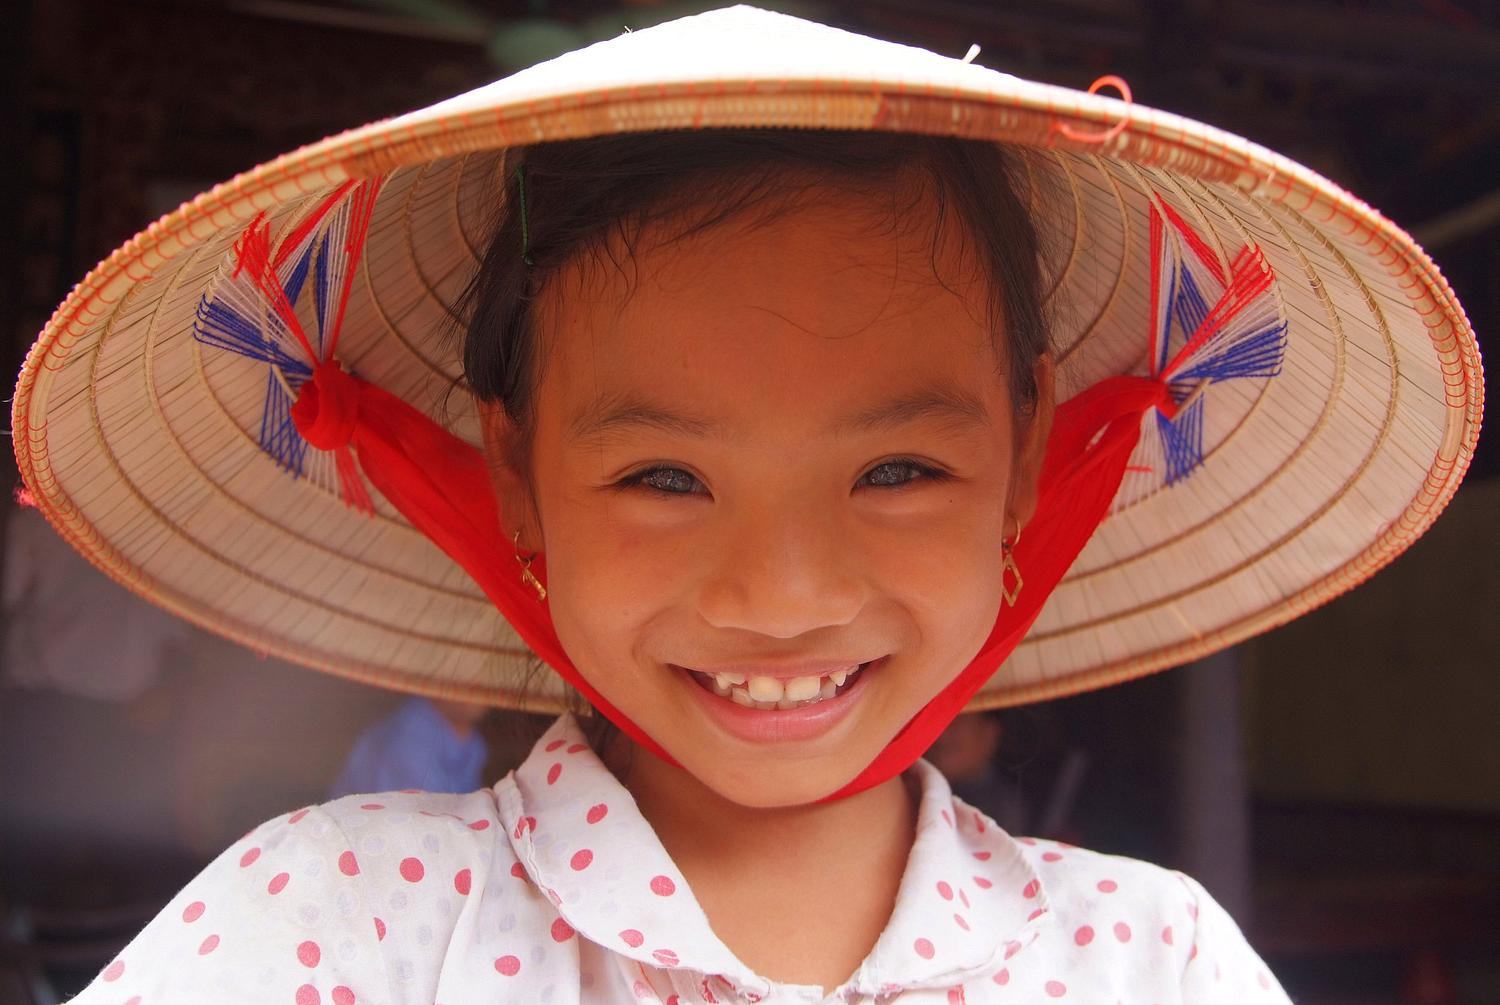 Portrait of a Smiling Girl in a Vietnamese Conical Hat